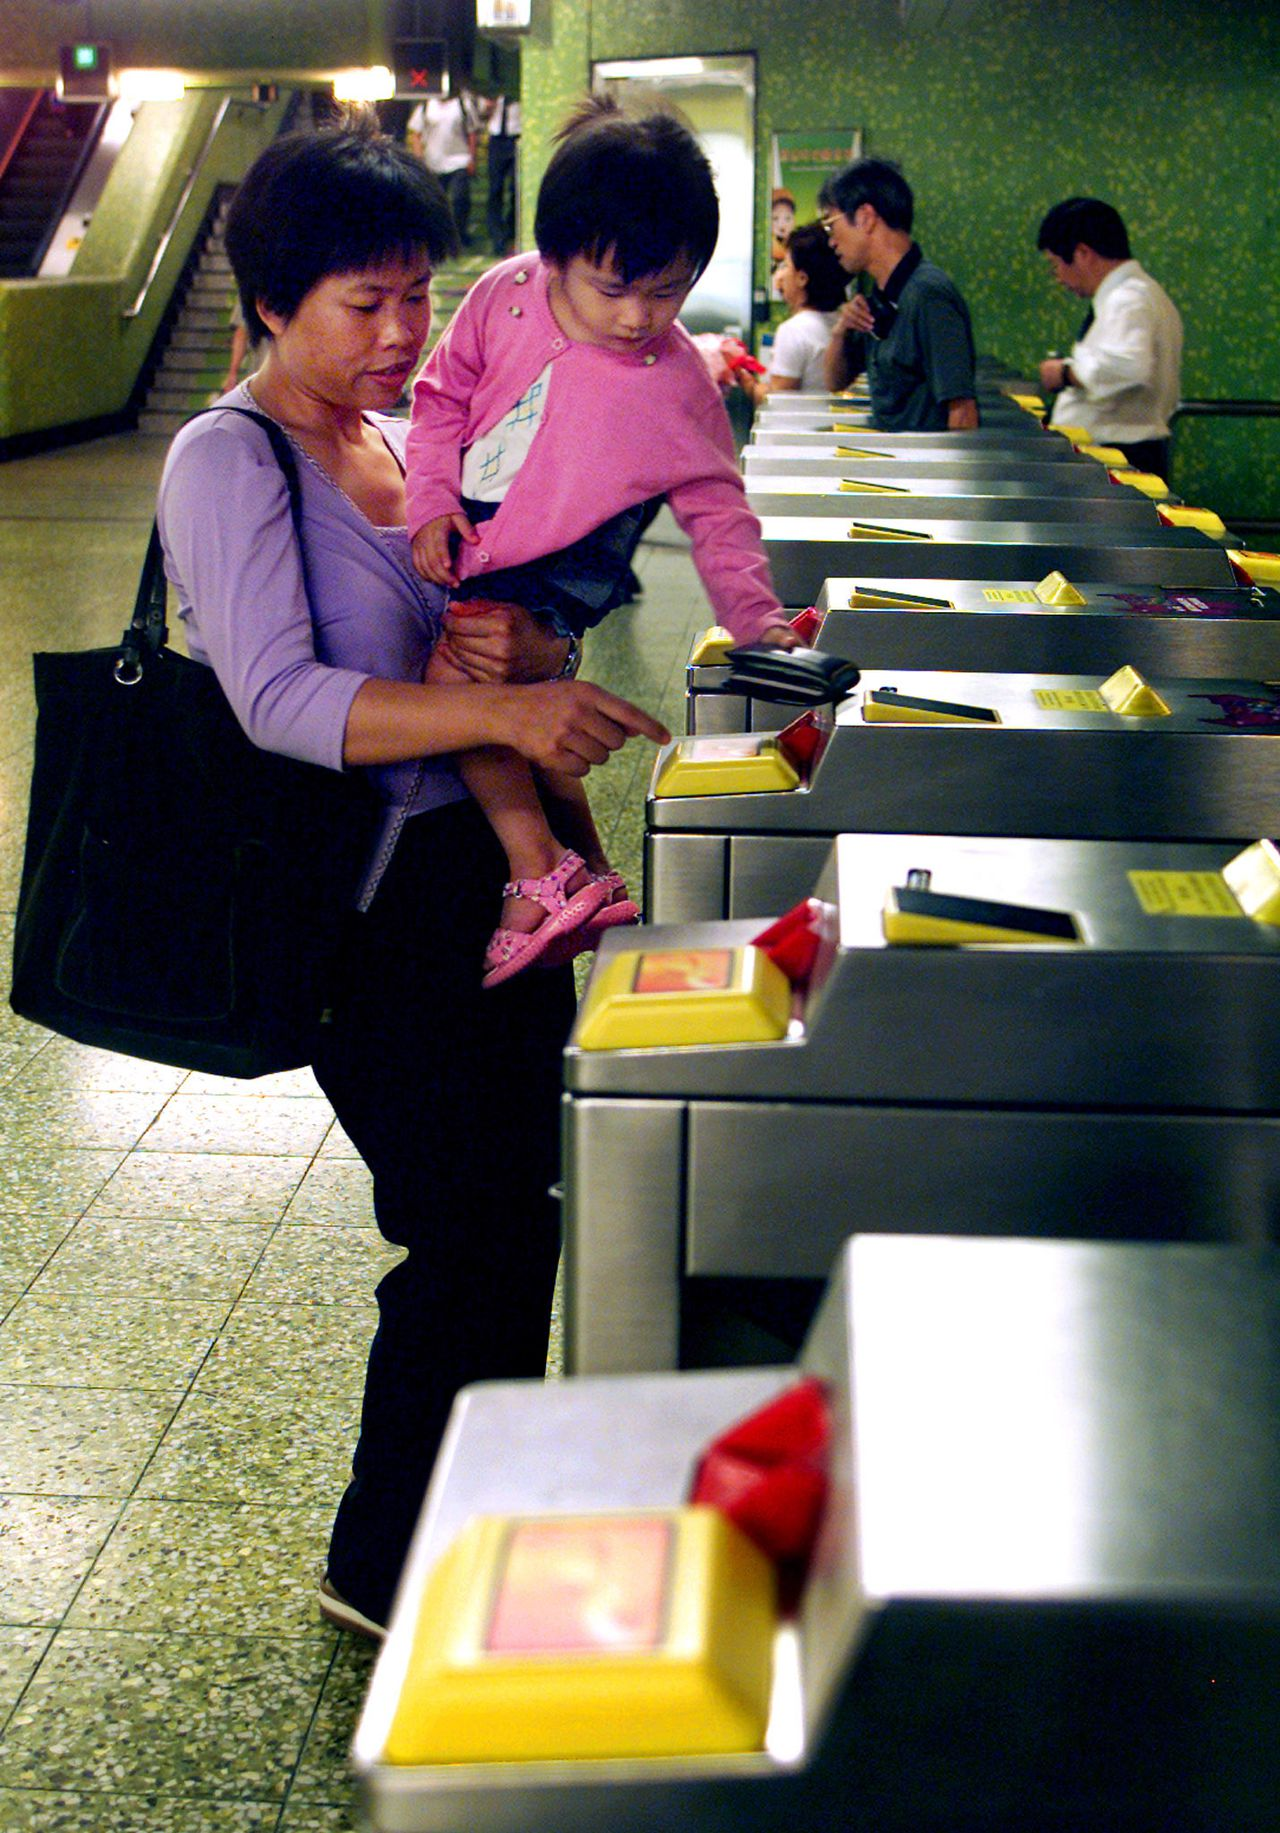 Een Hongkongse vrouw gebruikt in 2002 de chipkaart. Foto Reuters Passengers use Octopus card in Hong Kong metro station June 5, 2002. Most of the people carry an Octopus card - rechargeable, contactless card that is passed over a scanner to access almost every train, bus or ferry. The territory's 6.75 million inhabitants make nearly seven million Octopus transactions each day, worth about HK$48 million (US$6.12 million). REUTERS/Kin Cheung KC/BM